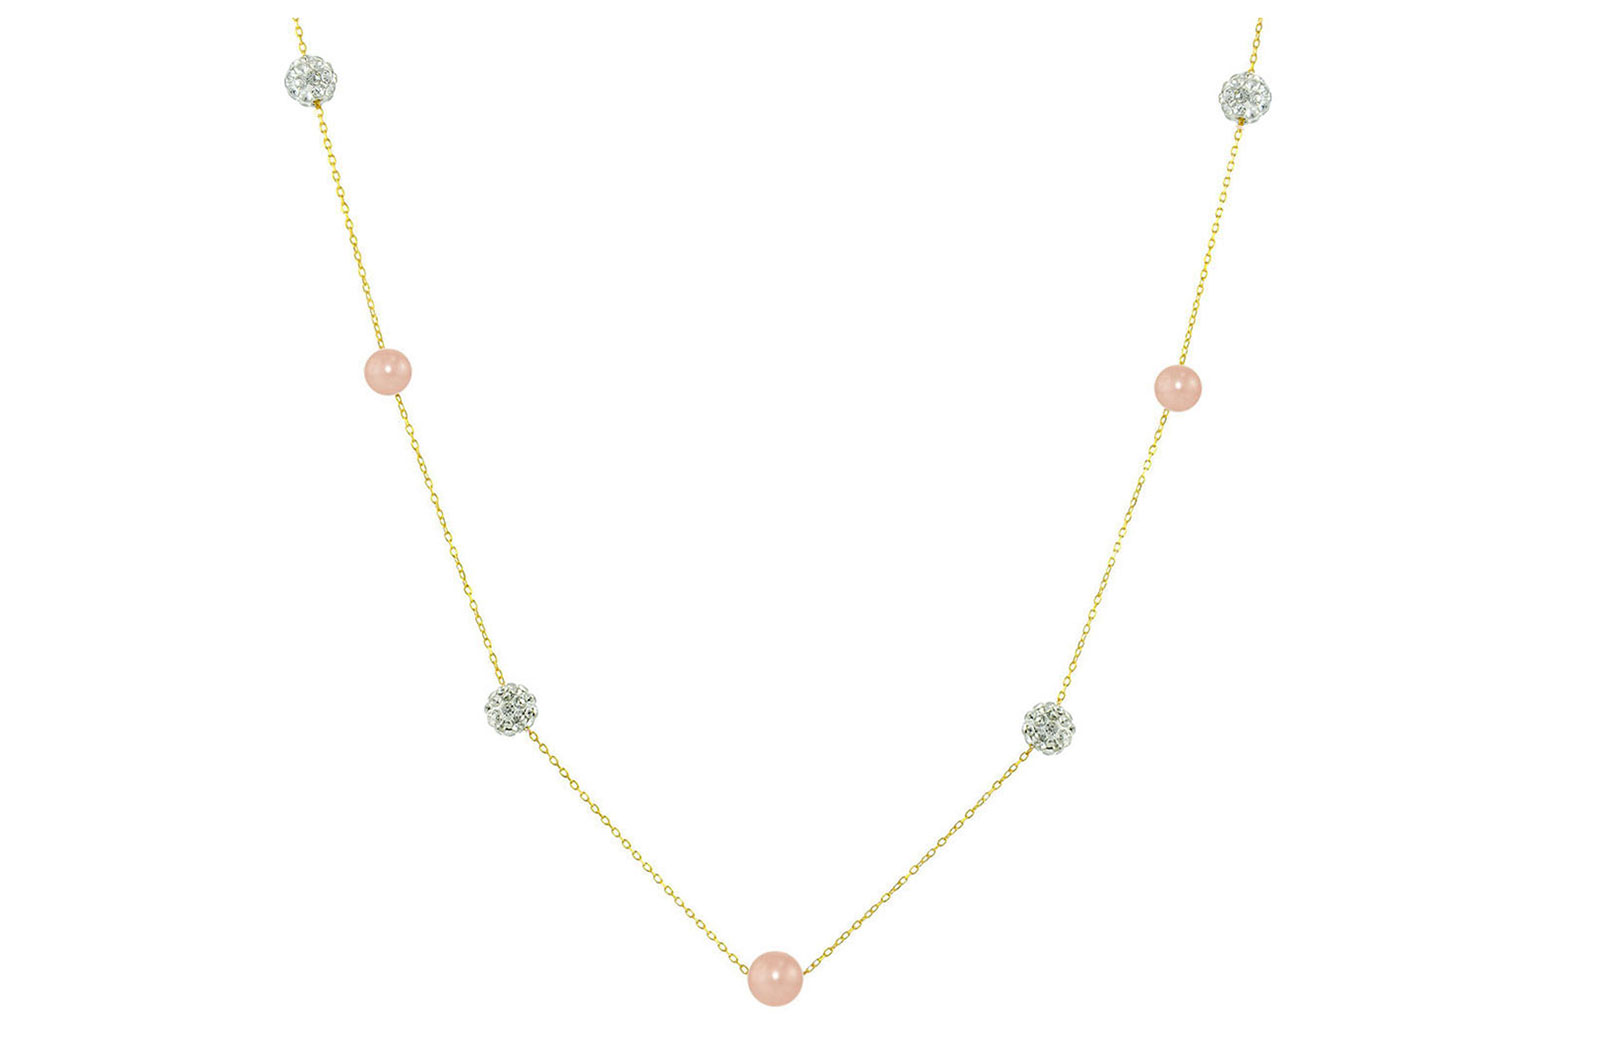 Vera Perla 18K Solid Gold Gradual Built-in 5-6mm Pink Pearls and Crystal Ball Necklace